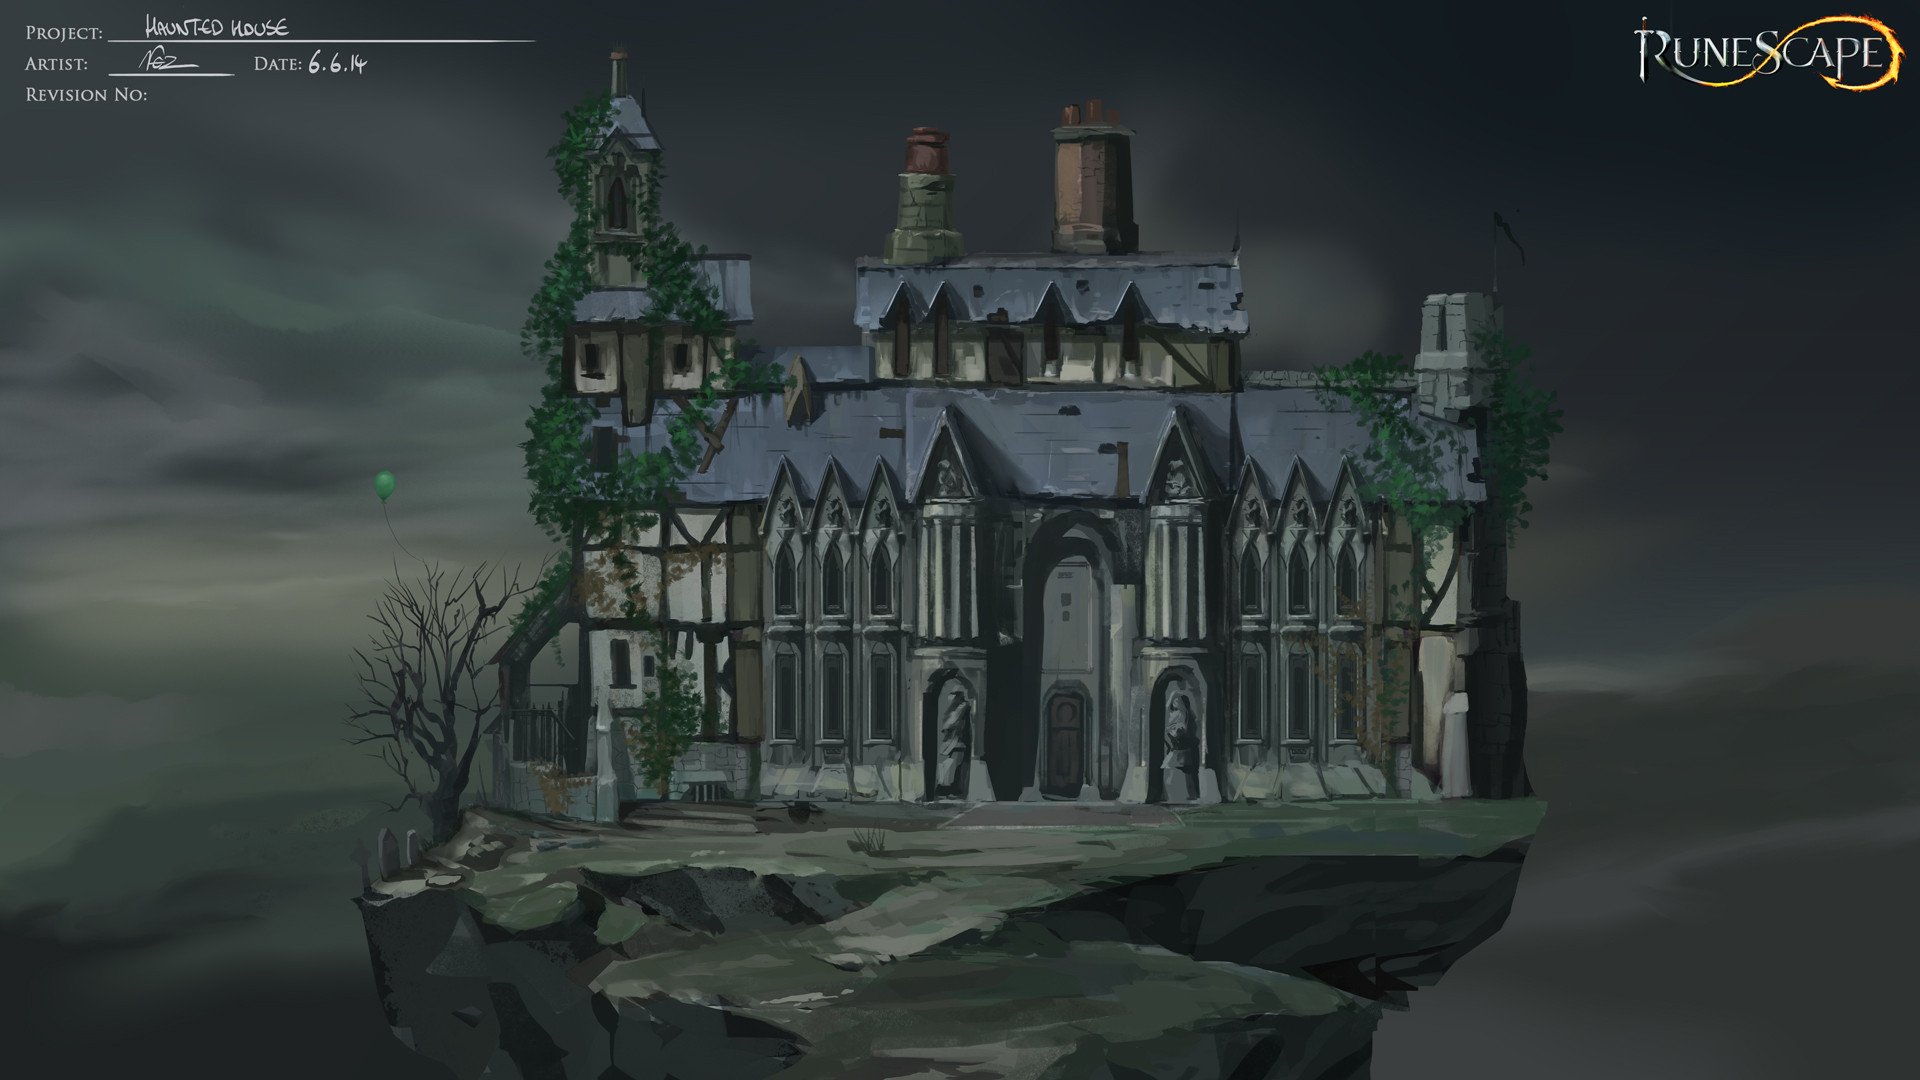 Haunted House Concept Art